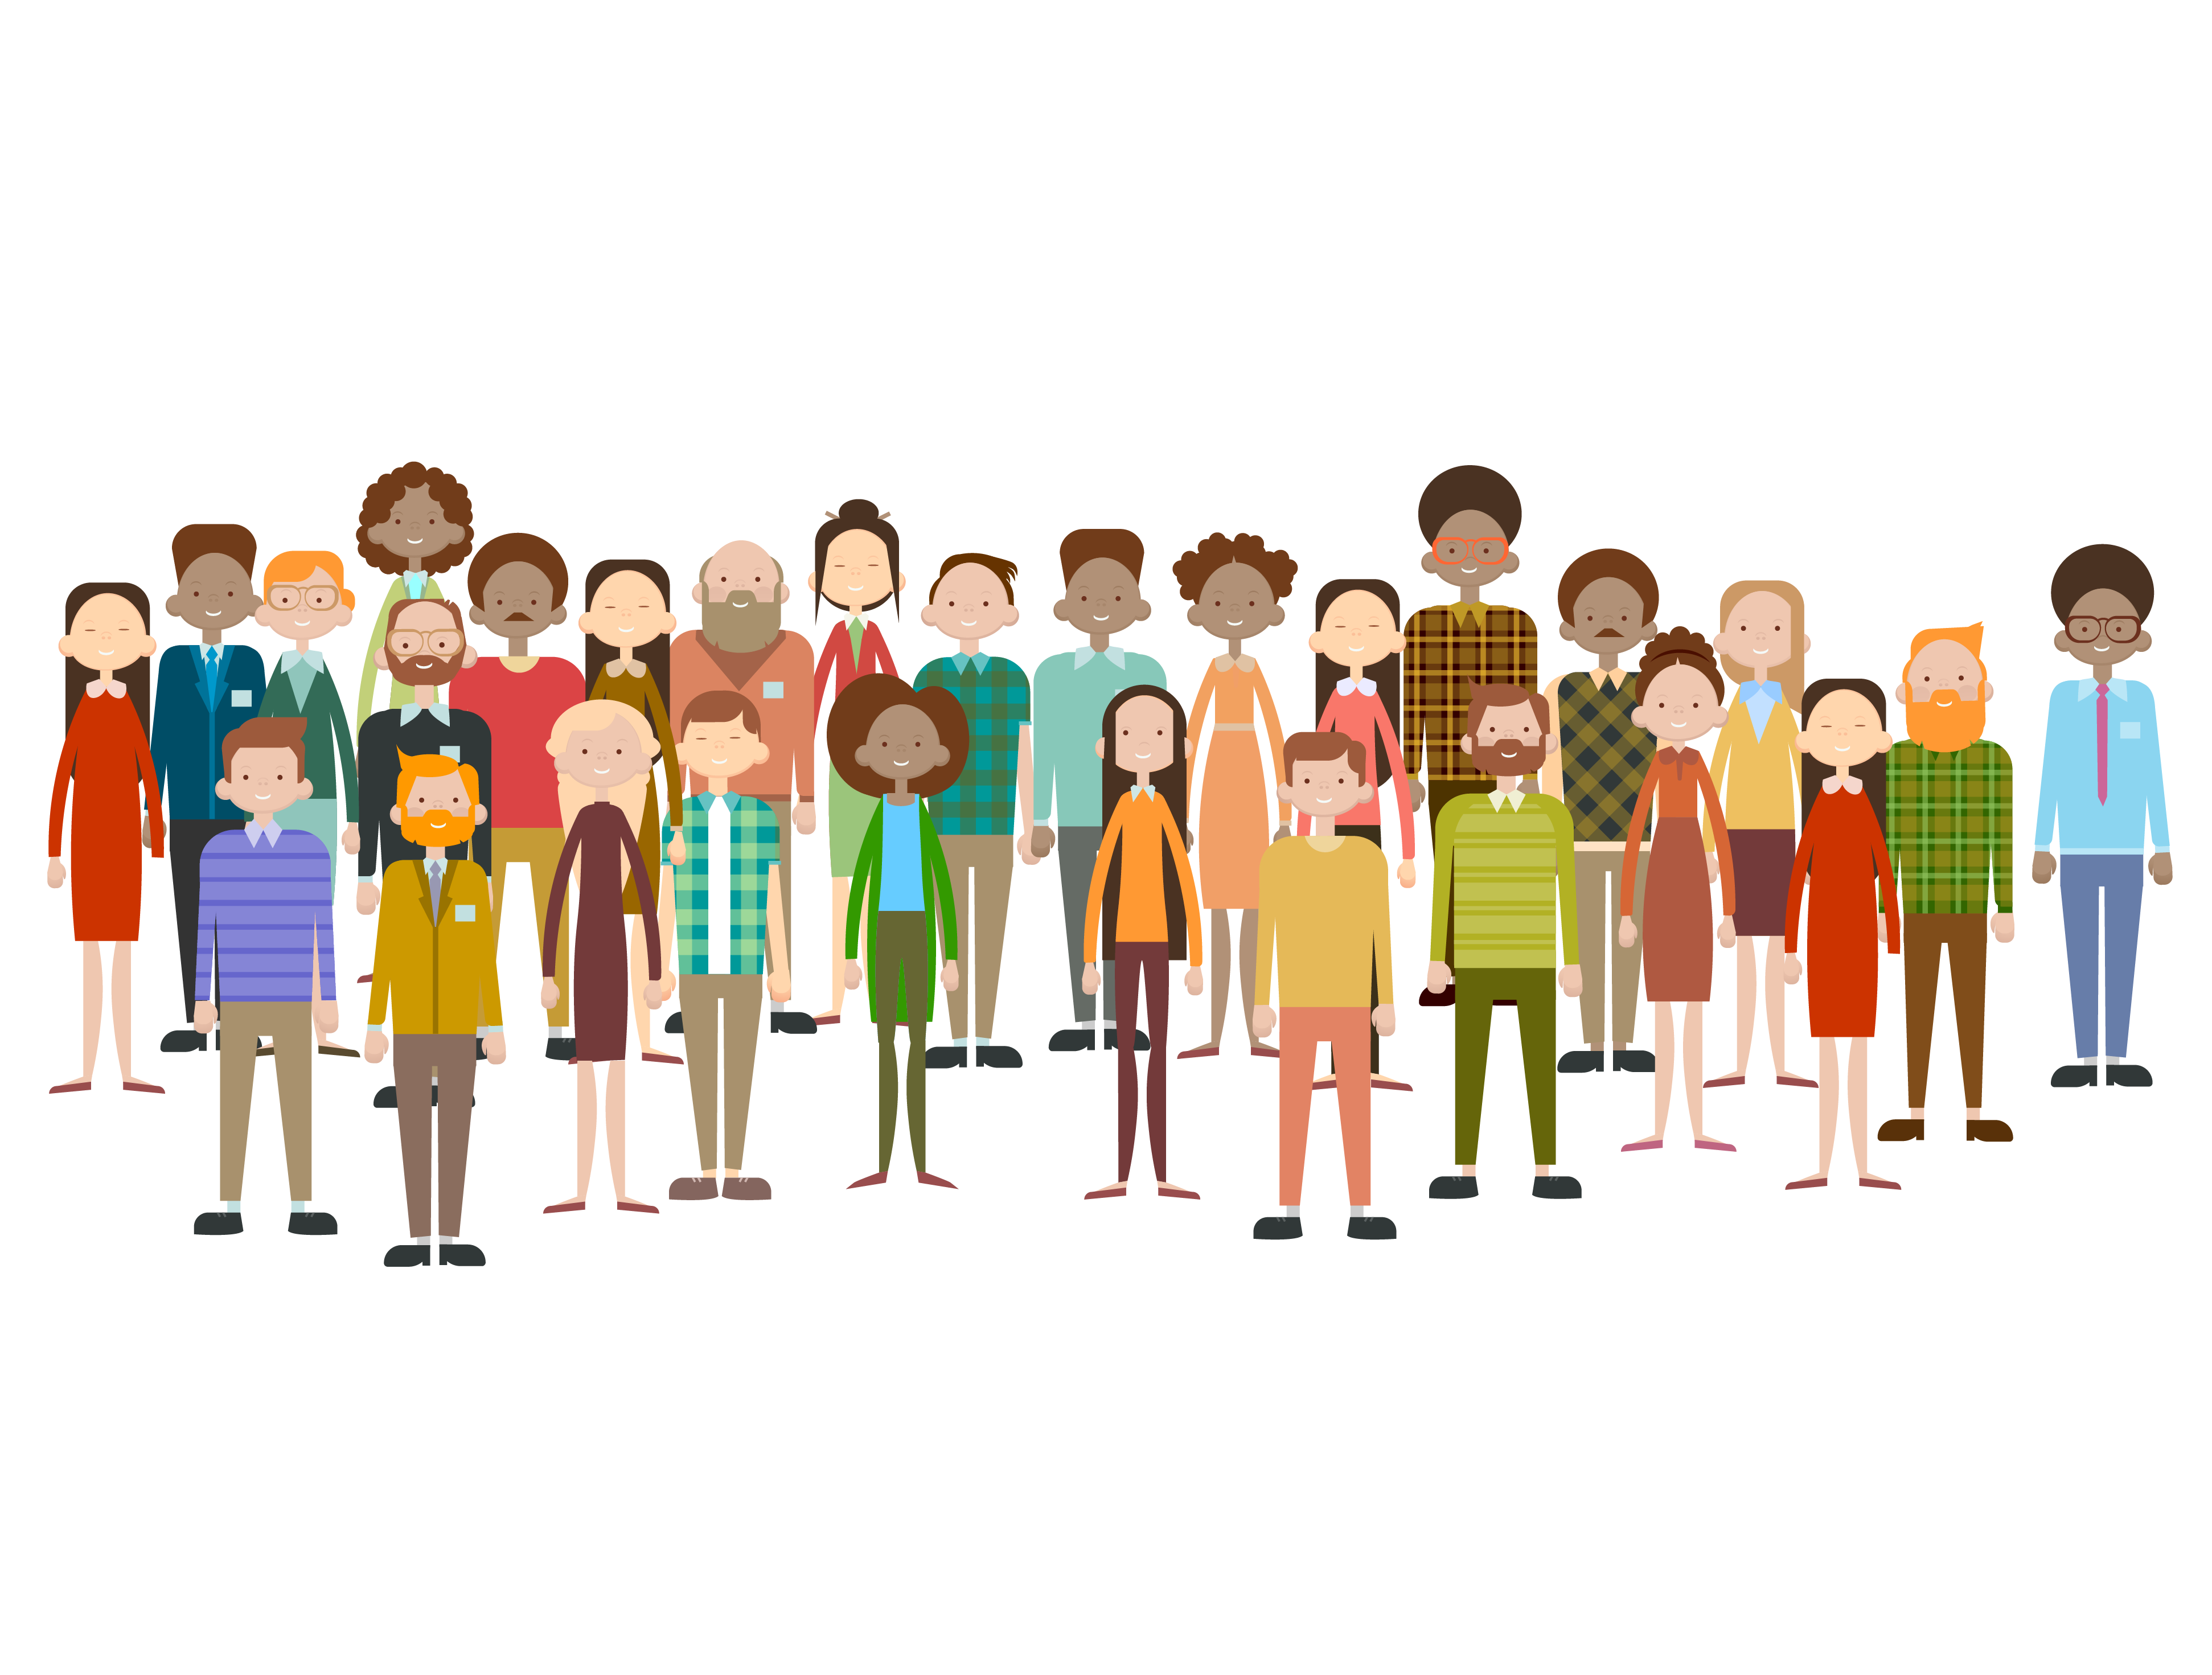 illustration of a large group of diverse people